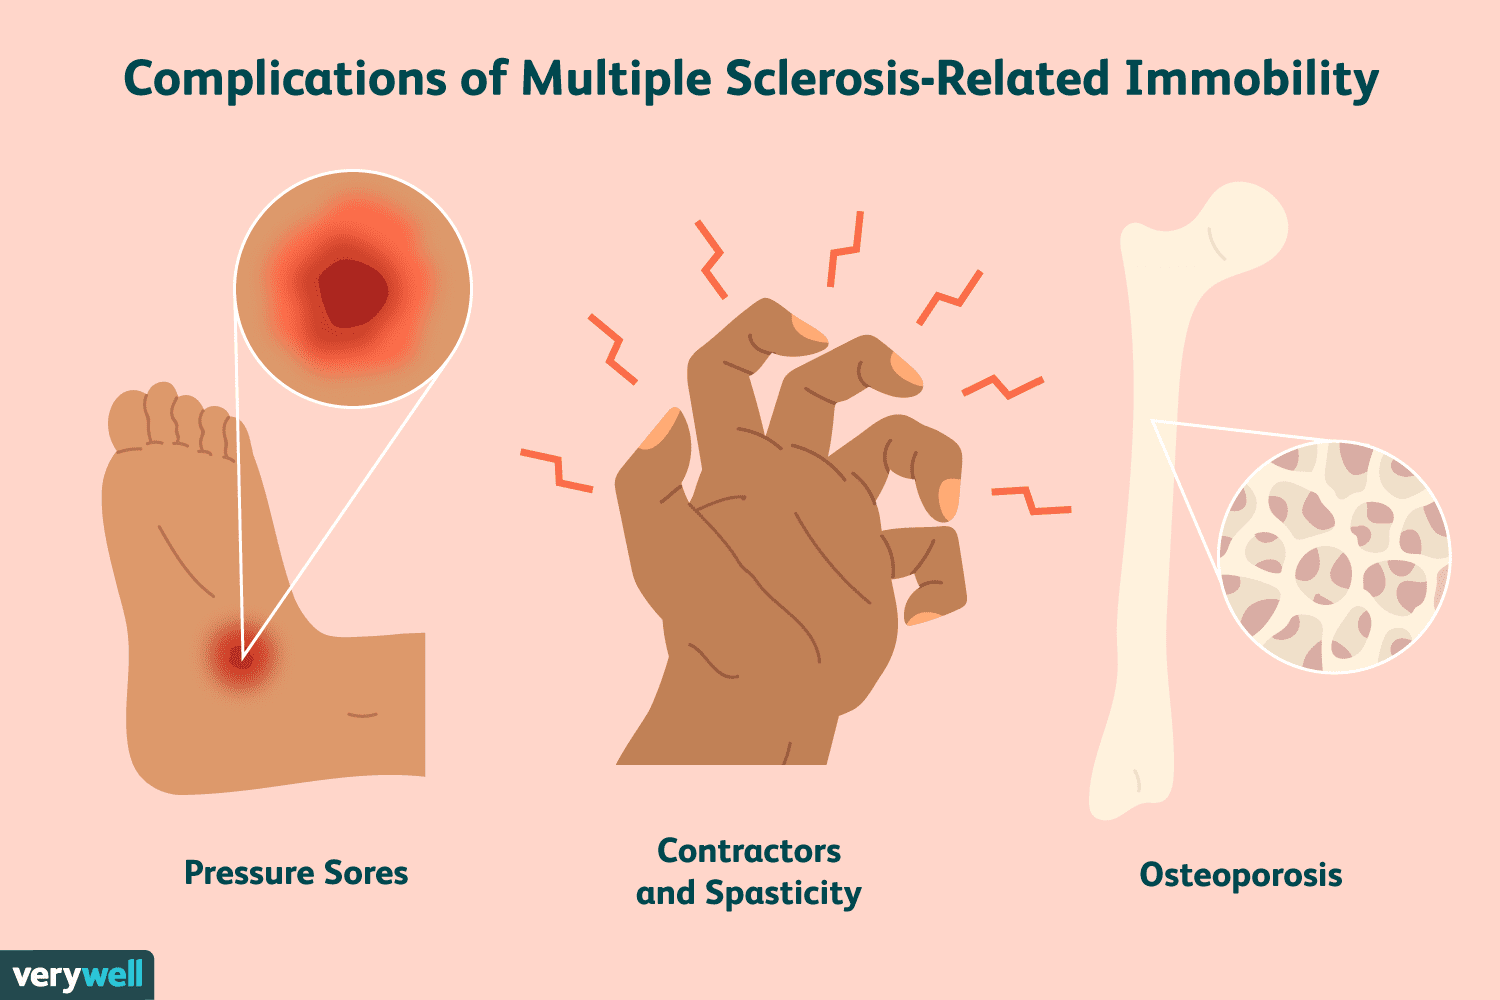 Sores, Contractures, and Osteoporosis Due to MS Immobility